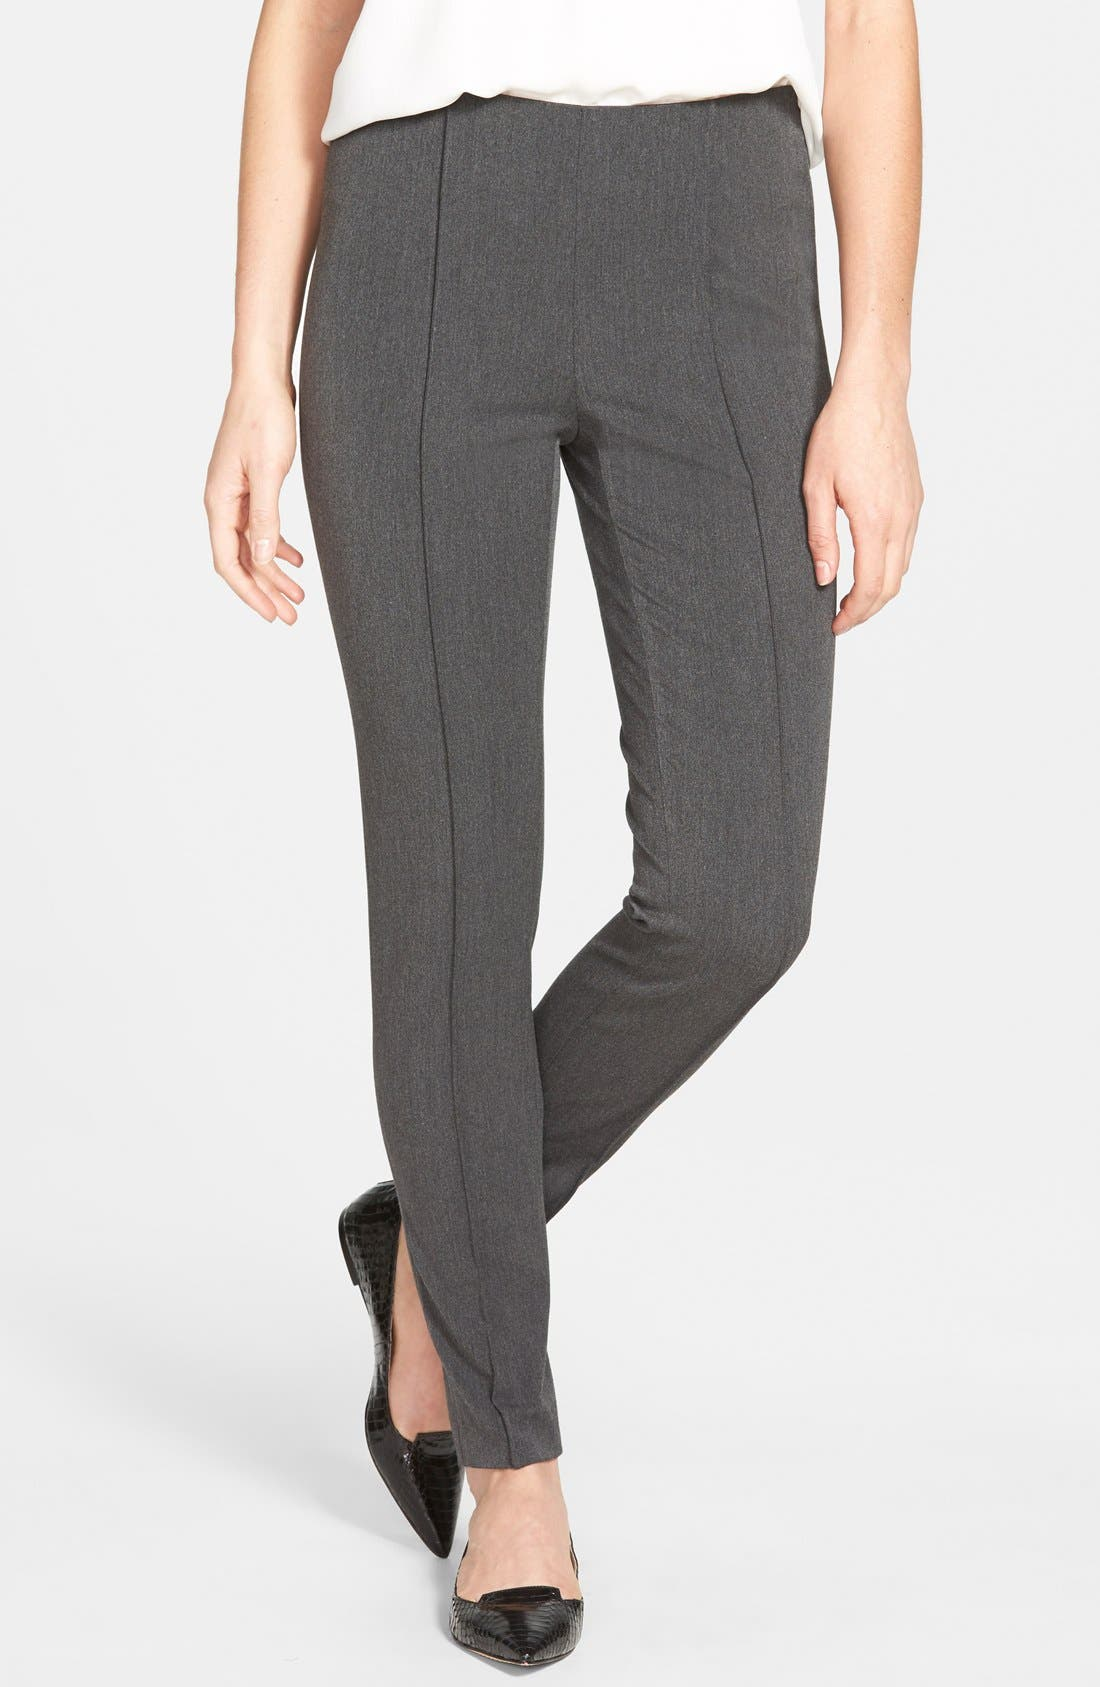 Main Image - Vince Camuto Side Zip Stretch Twill Pants (Regular & Petite) (Nordstrom Exclusive)